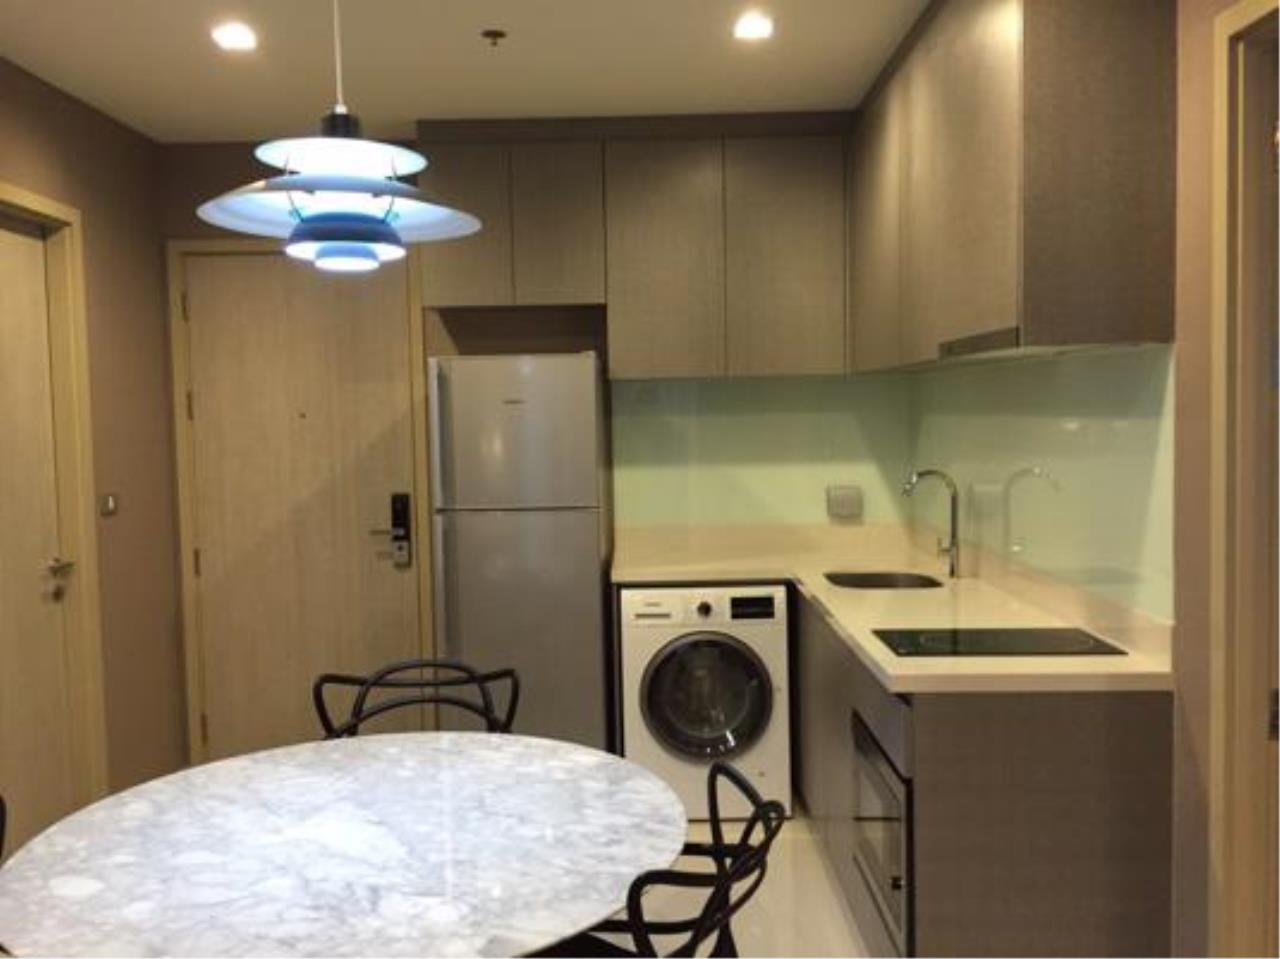 Right Move Thailand Agency's CA3834 Rhythm Sukhumvit  For Sale 10,900,000 THB  2 beds Rhythm Sukhumvit 36-38 3